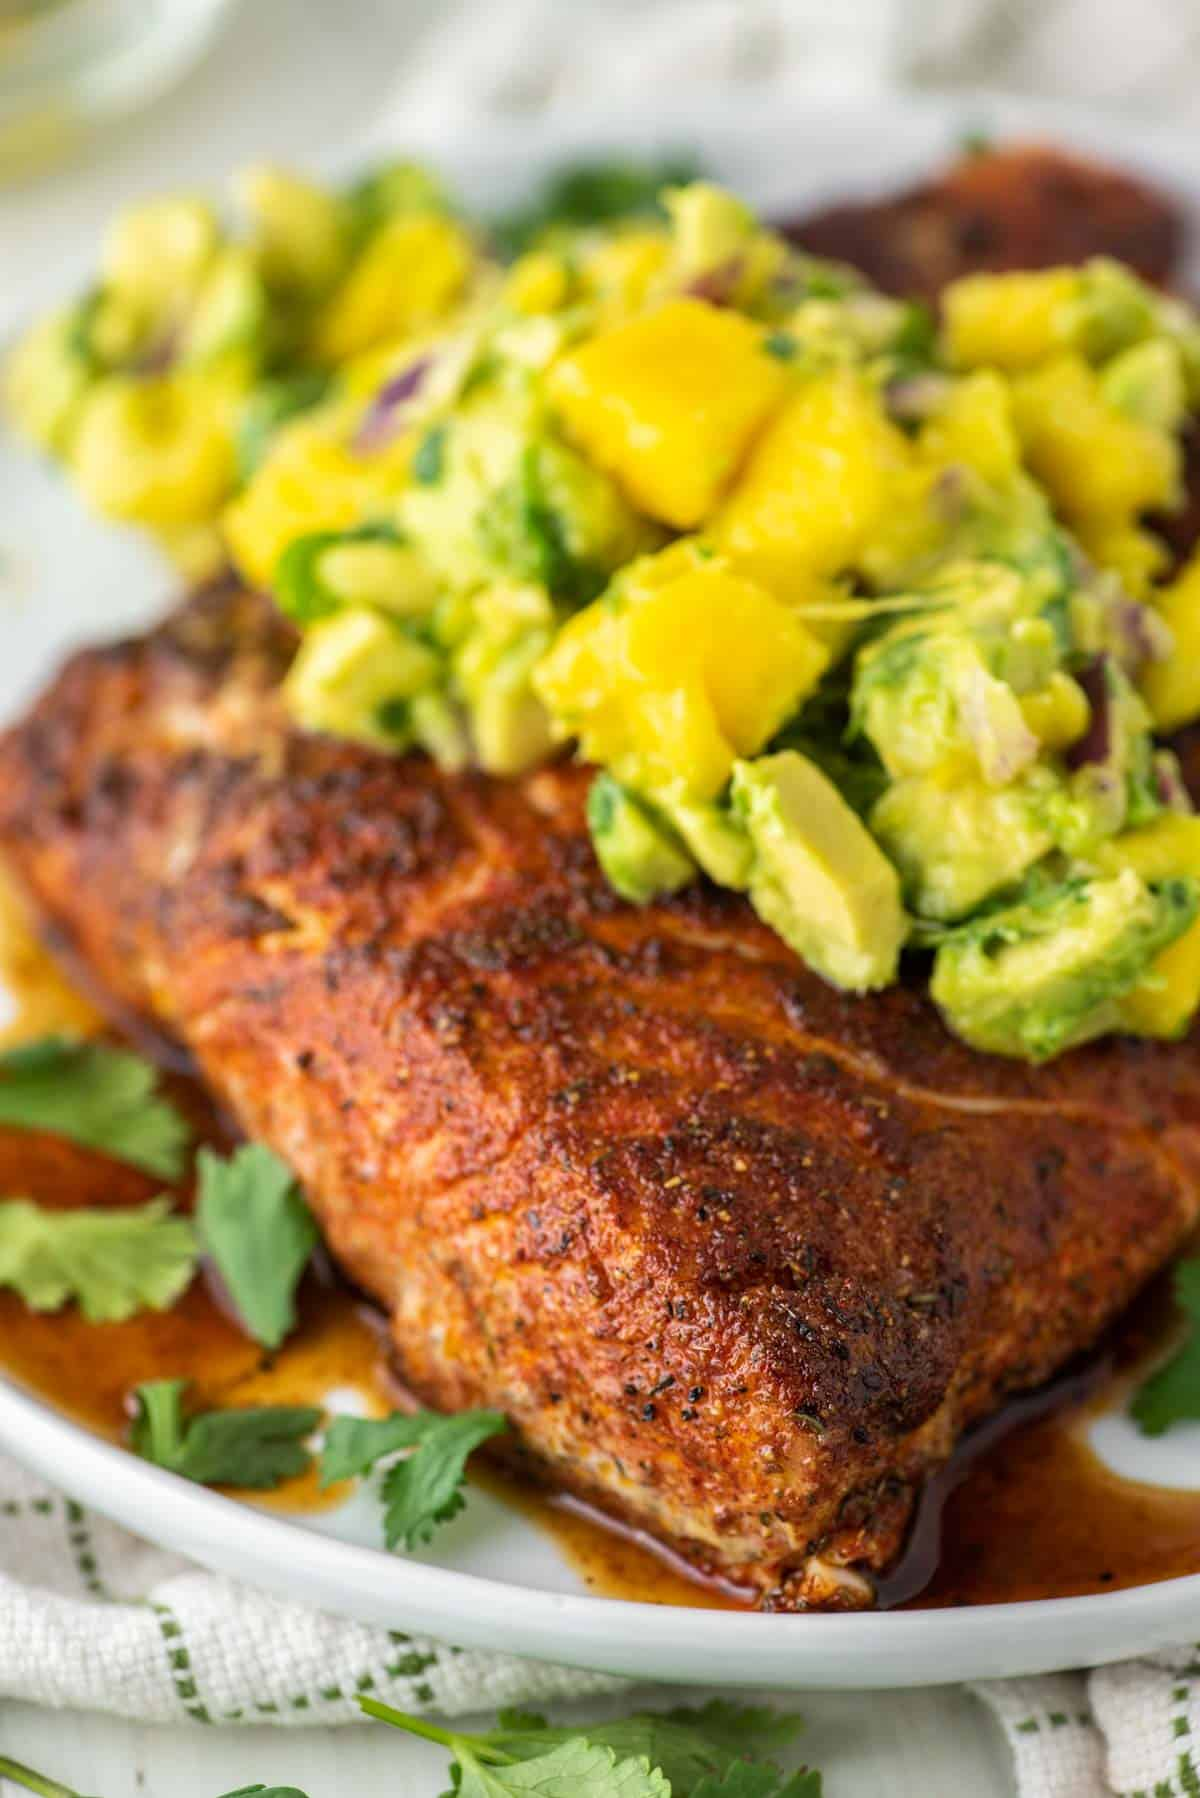 halibut topped with avocado mango salsa on plate